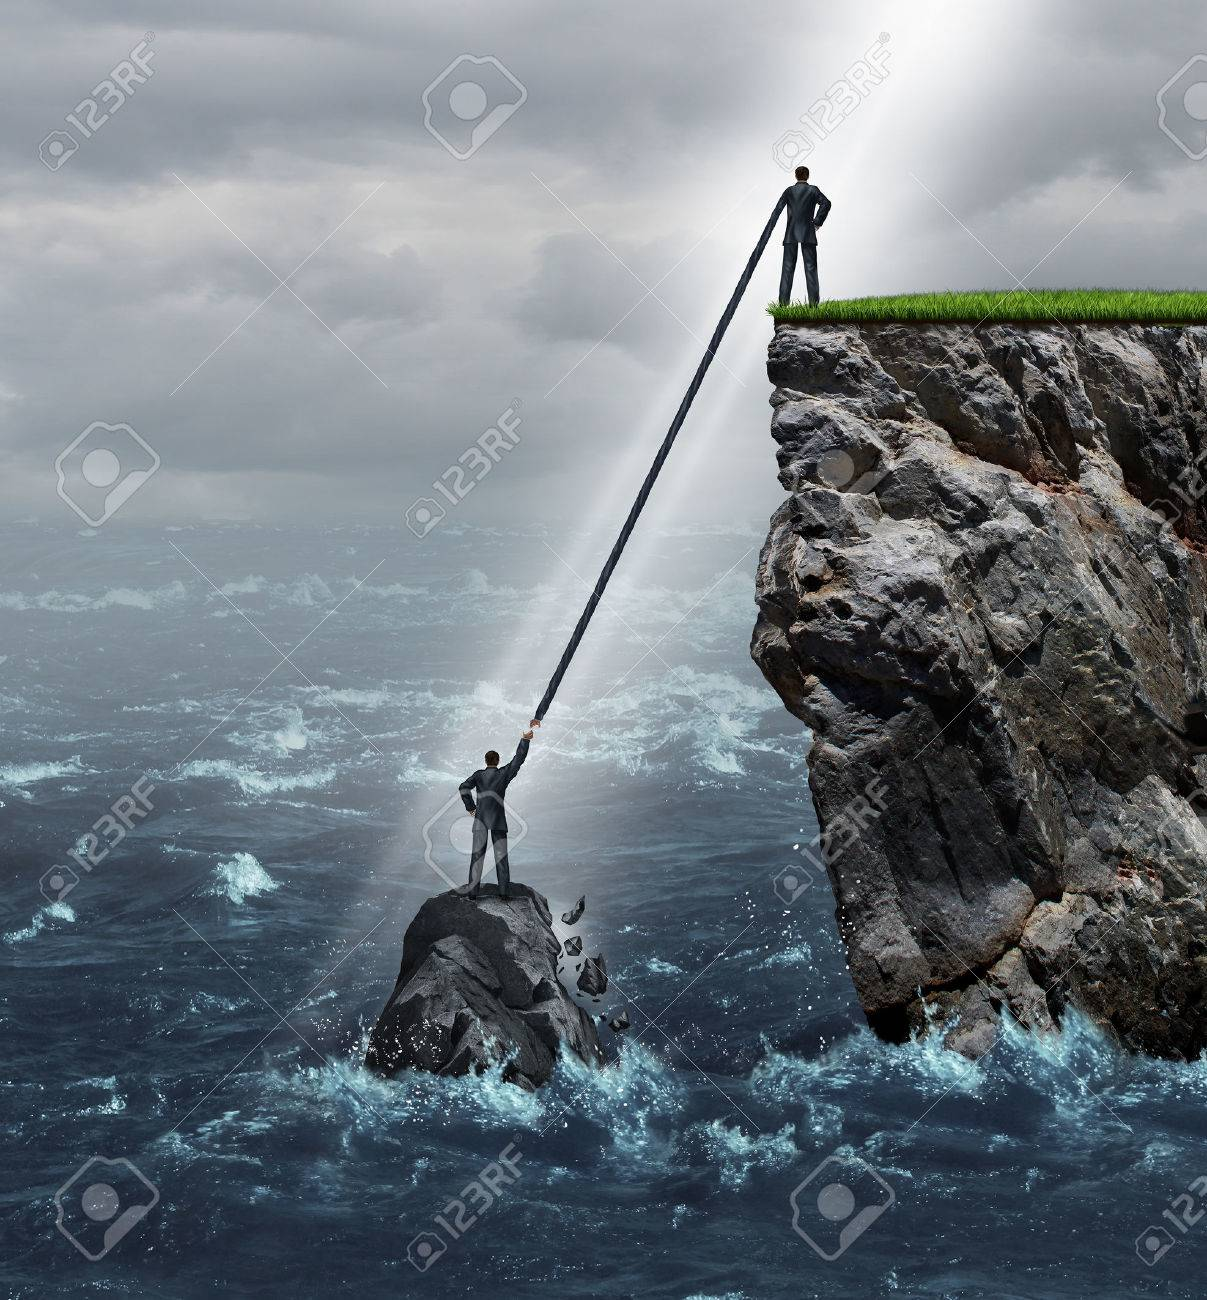 weakness images stock pictures royalty weakness photos and weakness embrace opportunity business concept as a person in a crisis stranded in the ocean